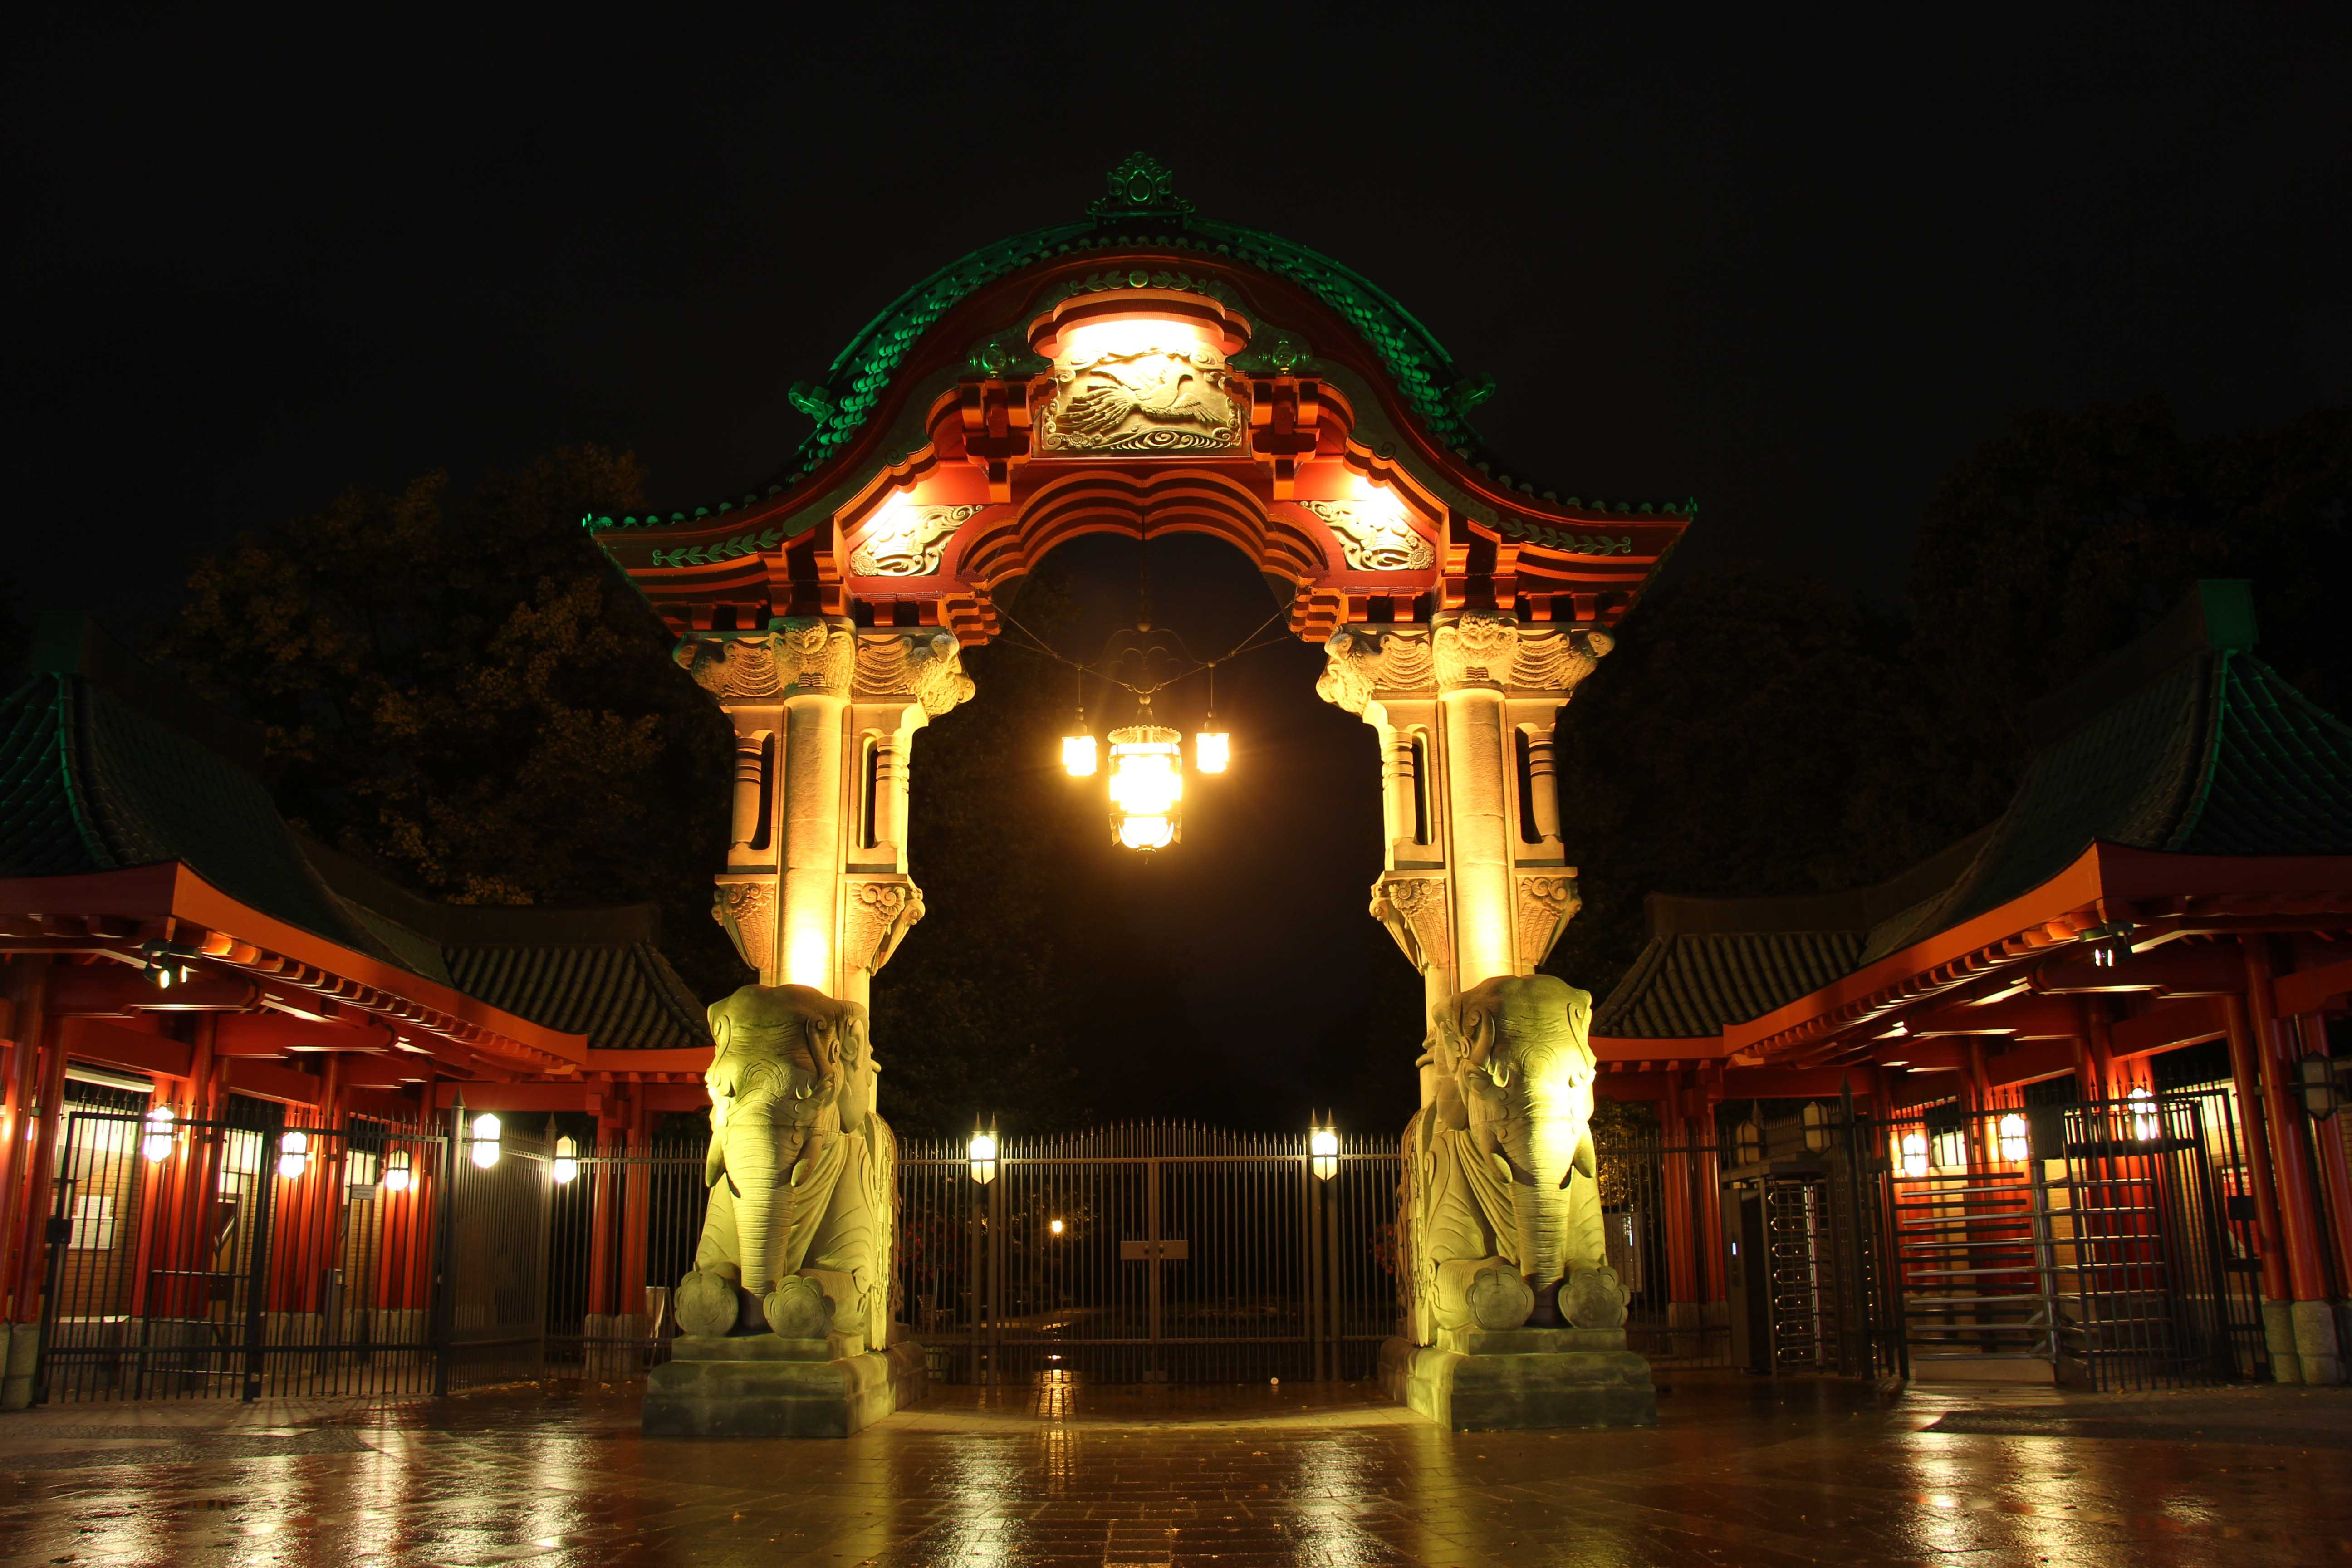 Elefantentor am Zoologischer Garten (The Elephant Gate at Berlin Zoo) lit up during the Festival of Lights in Berlin